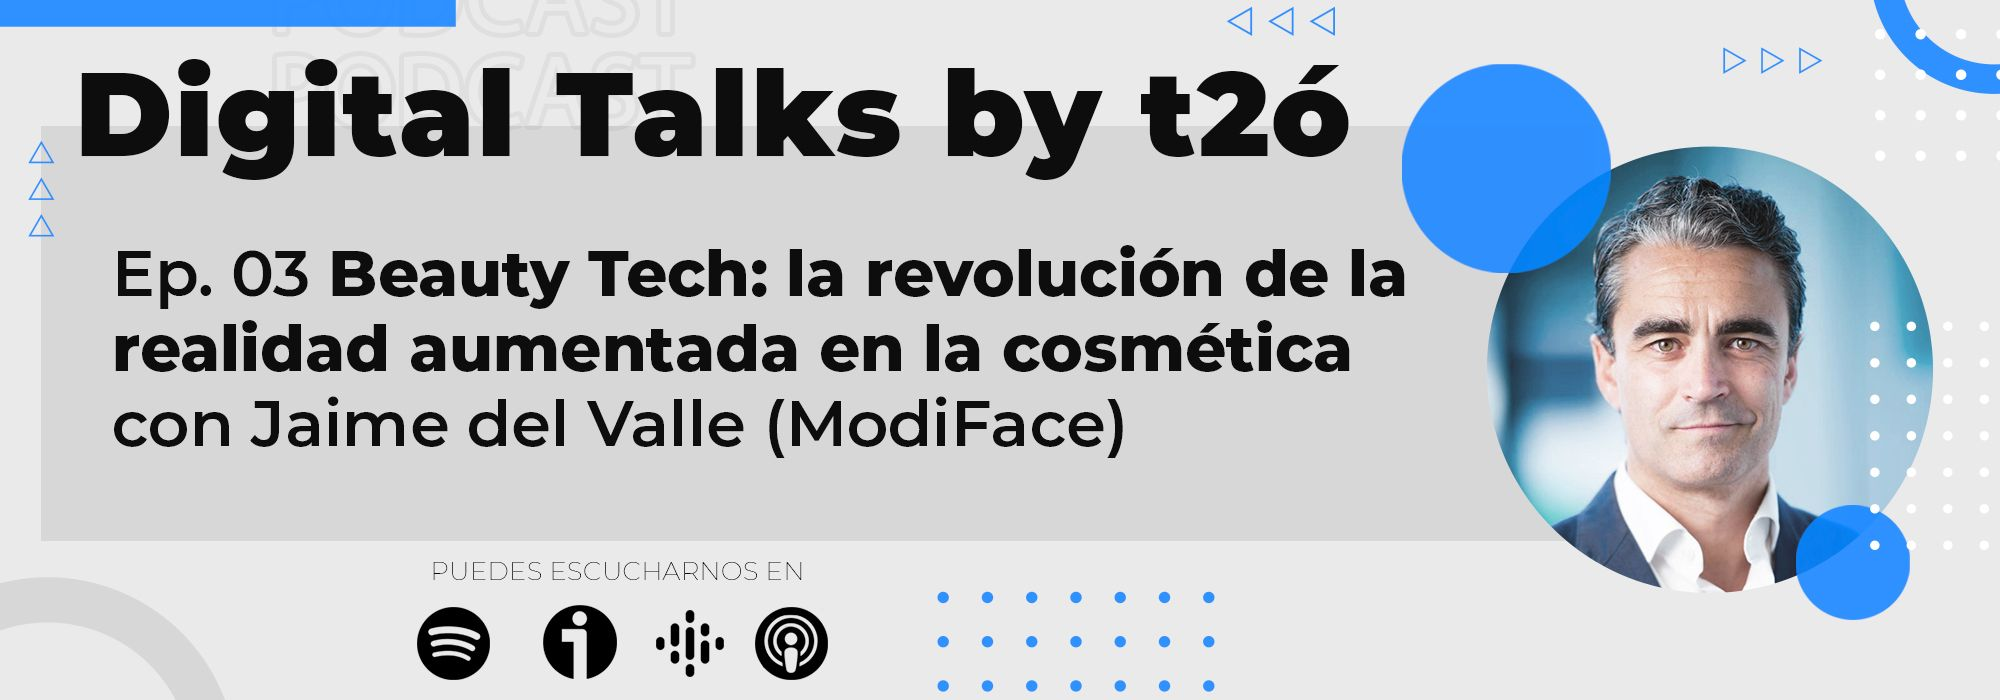 Episodio 3 Realidad Aumentada Podcast Digital Talks by t2ó